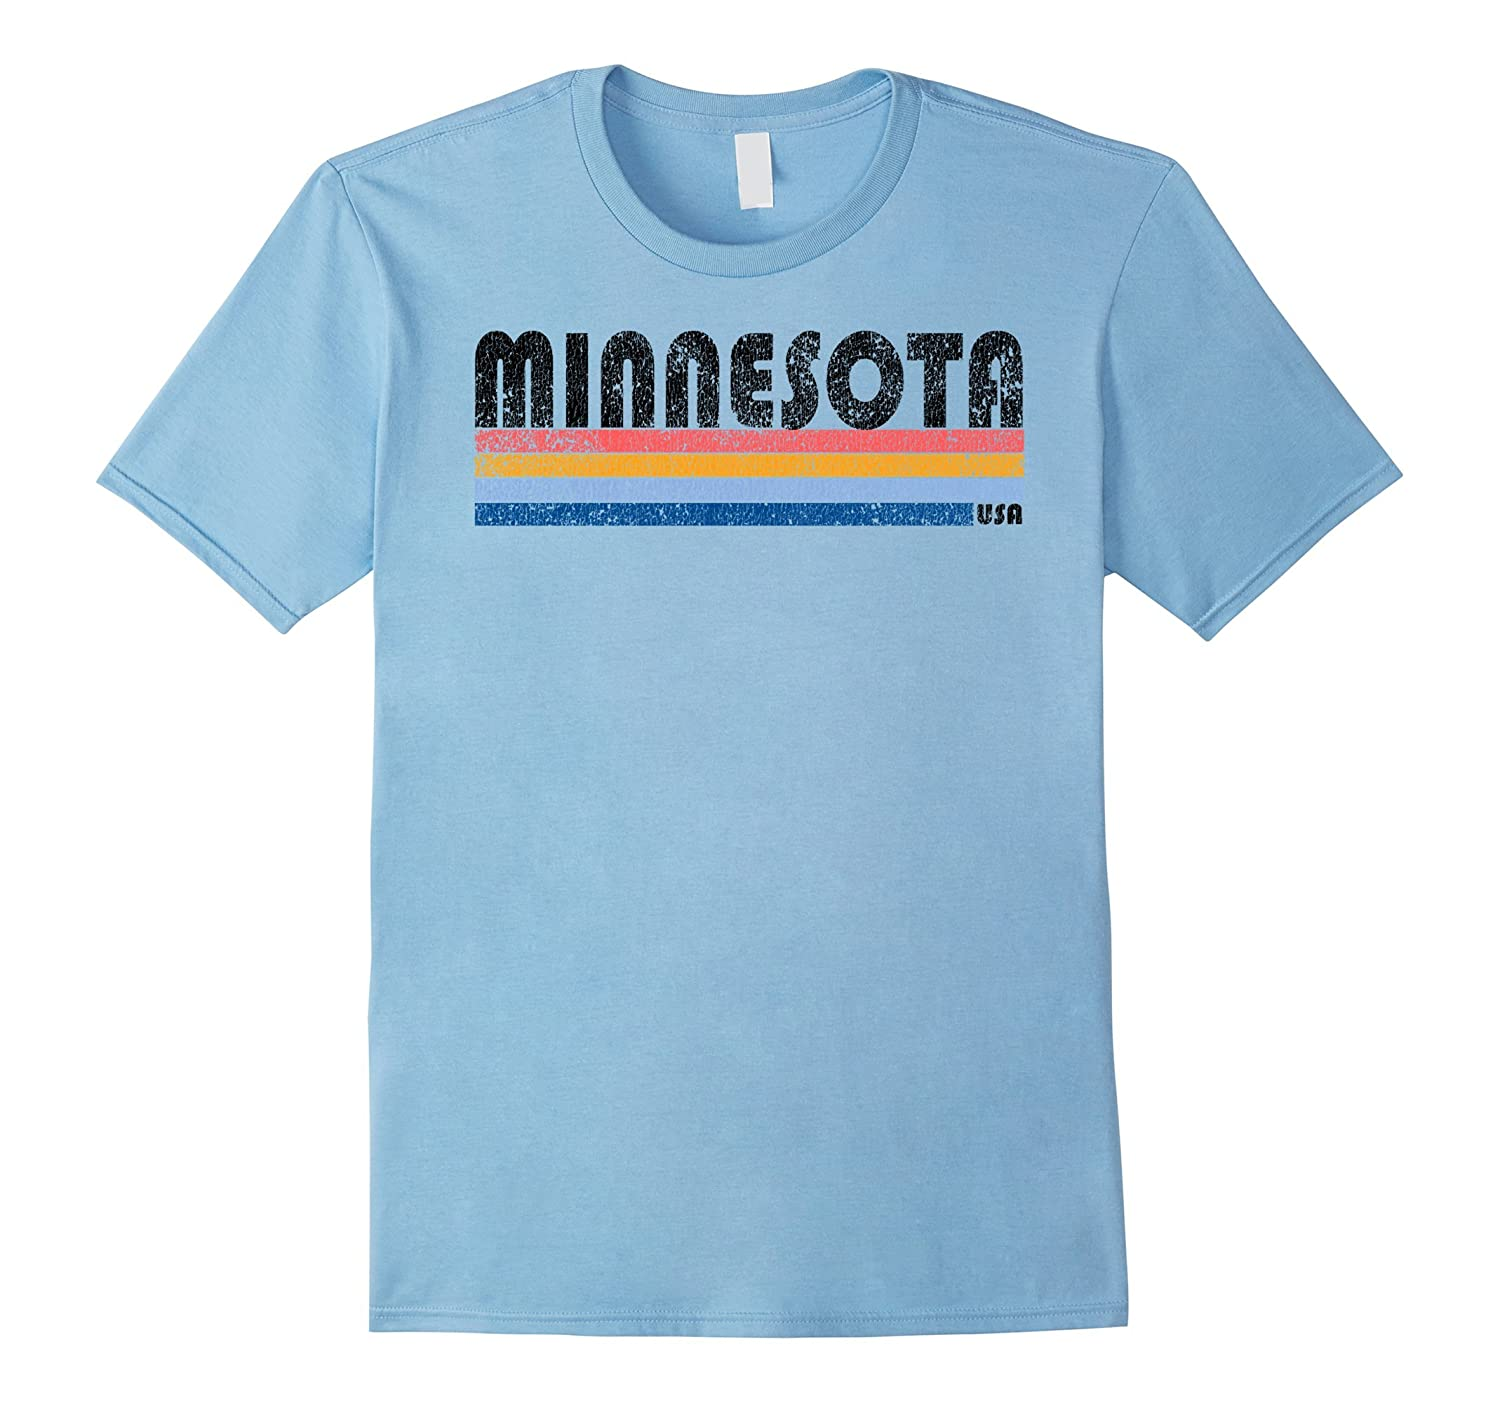 Vintage 1980s Style Minnesota Medium-Awarplus